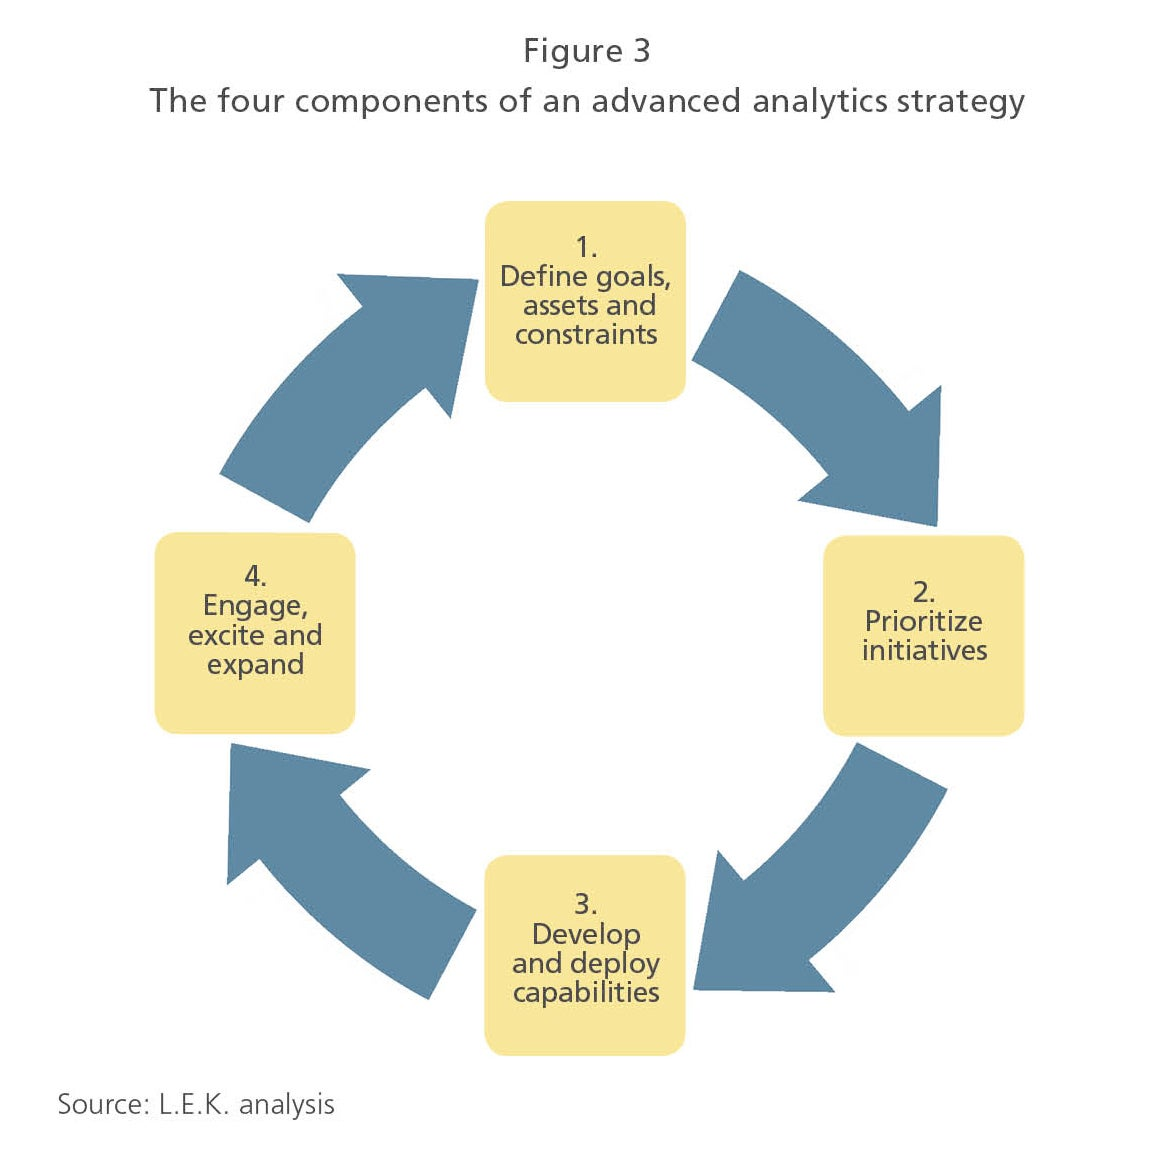 The four components of an advanced analytics strategy